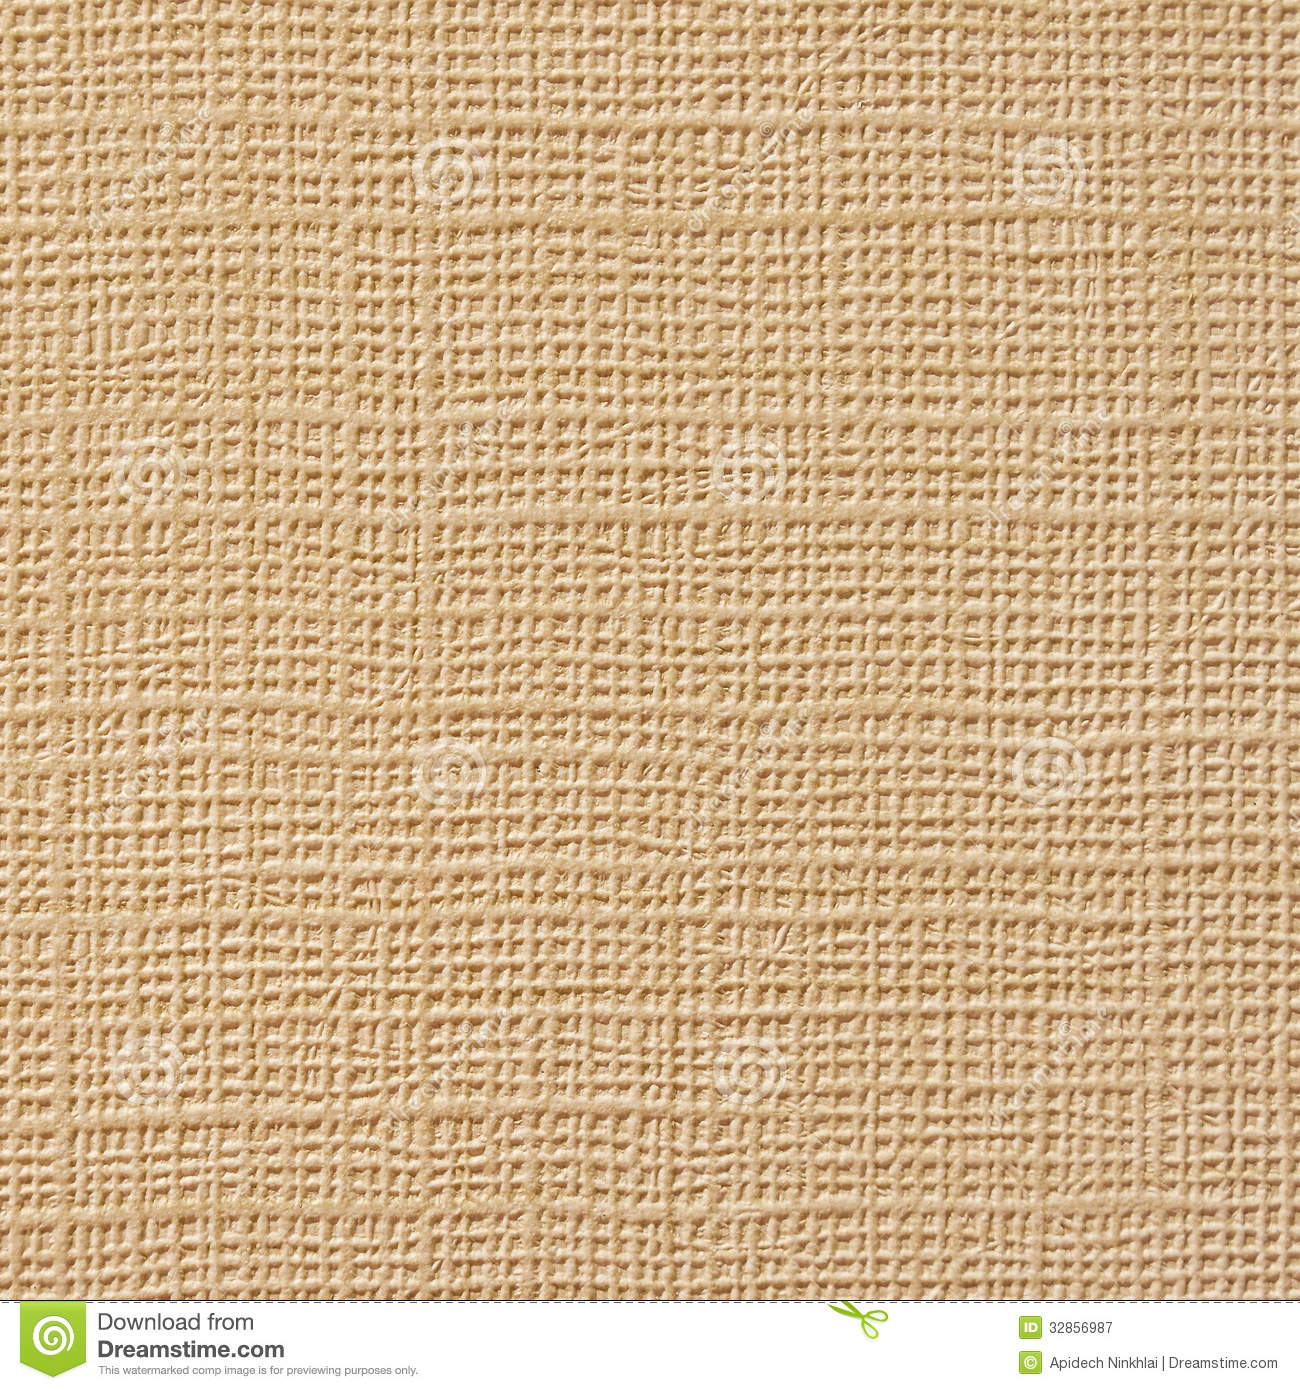 Interior Wall Textures Designs : Texture Of Wallpaper Royalty Free Stock Photography - Image: 32856987